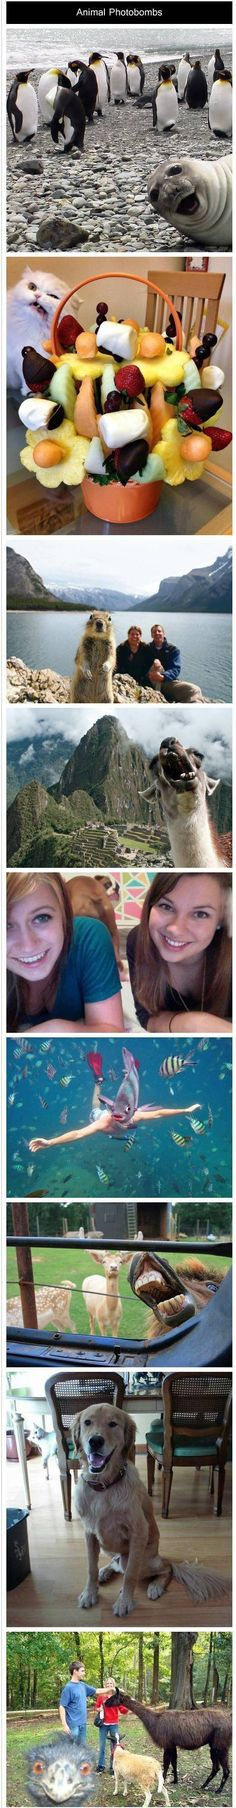 Animals Photobomb (compilation)